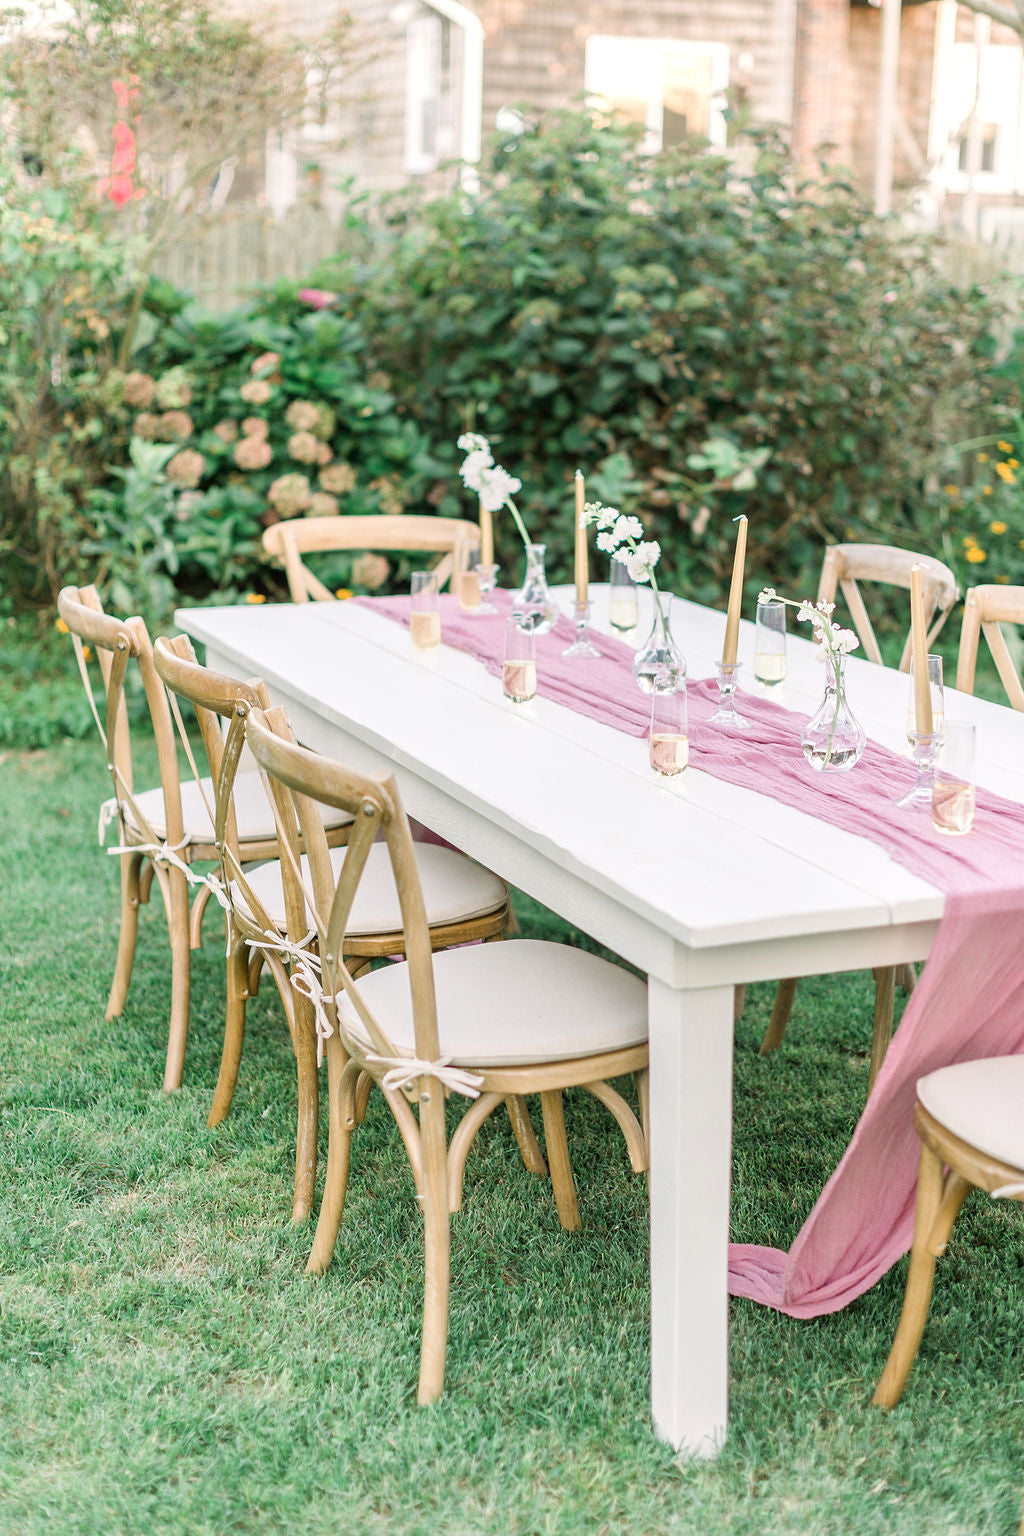 Wedding reception table with pink table runner, candles, and champagne flutes